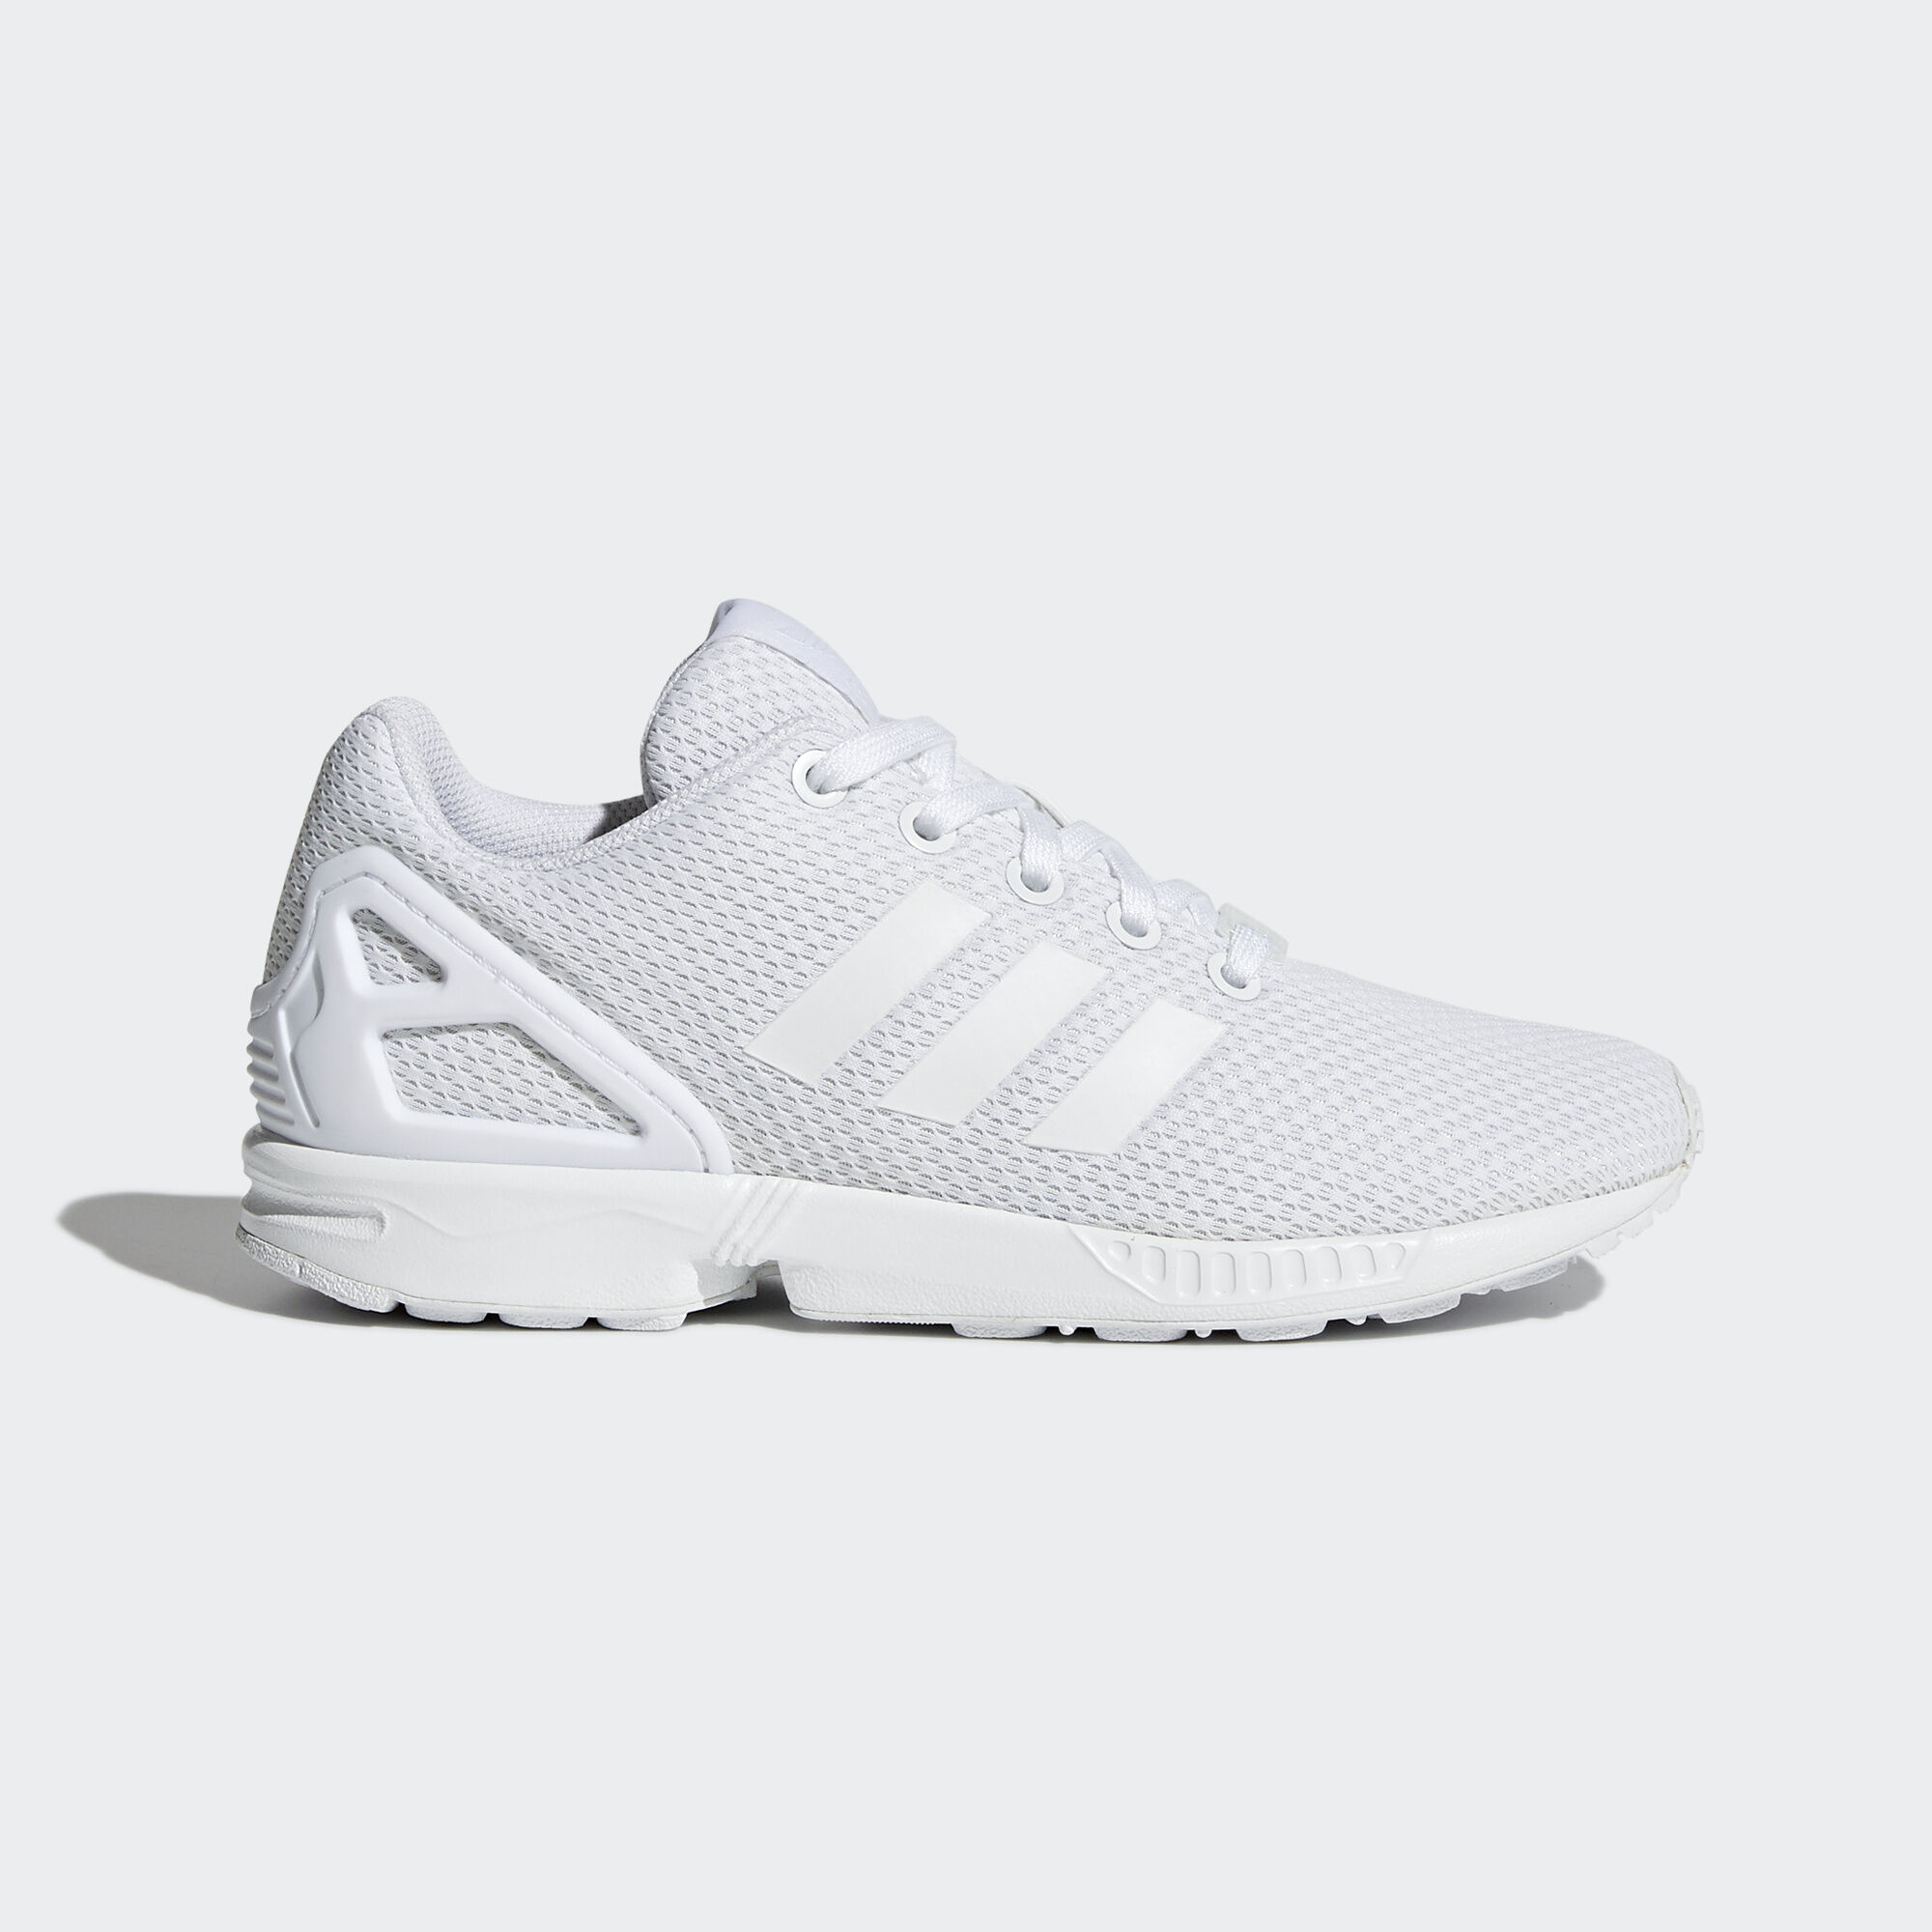 Adidas Zx Flux White And Black